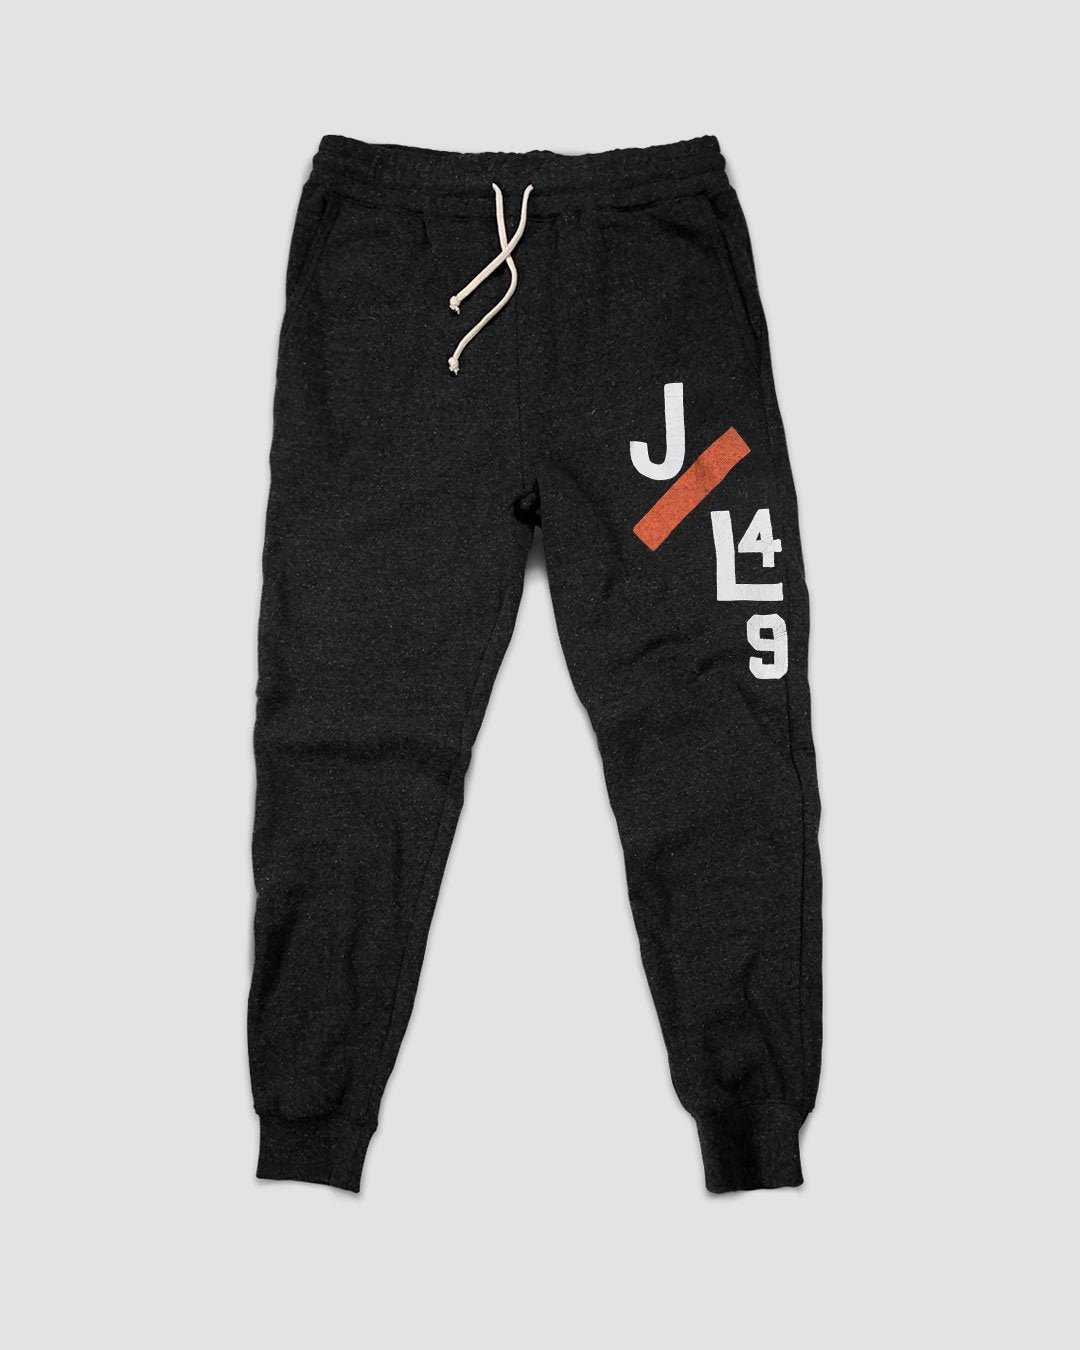 Joe Louis Ground Breaker Sweatpants - Roots of Inc dba Roots of Fight